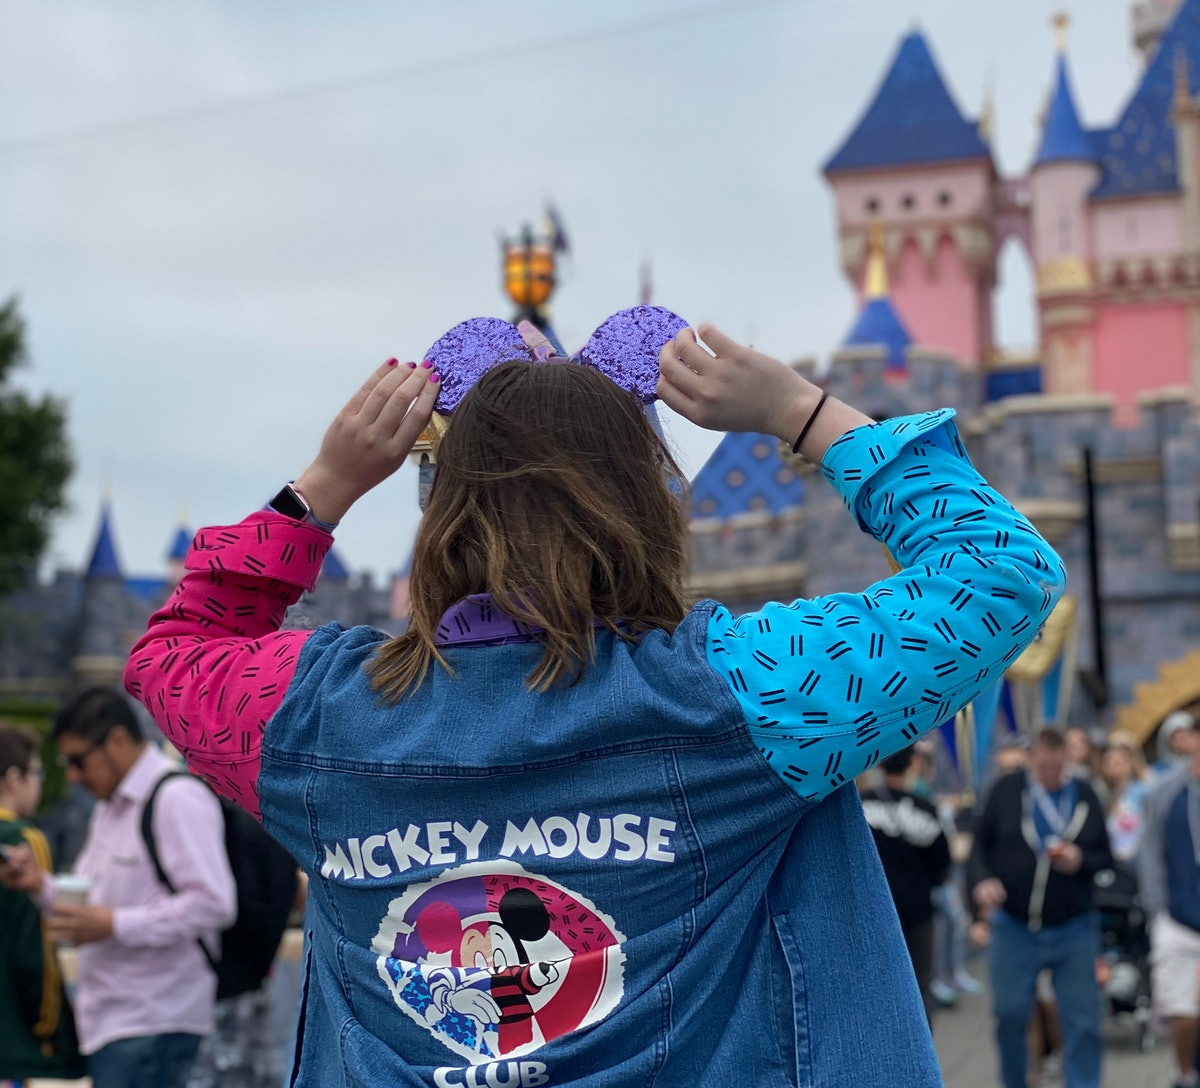 A woman holds her sparkly purple Mickey Mouse ears while standing in front of the castle at Disneyla...